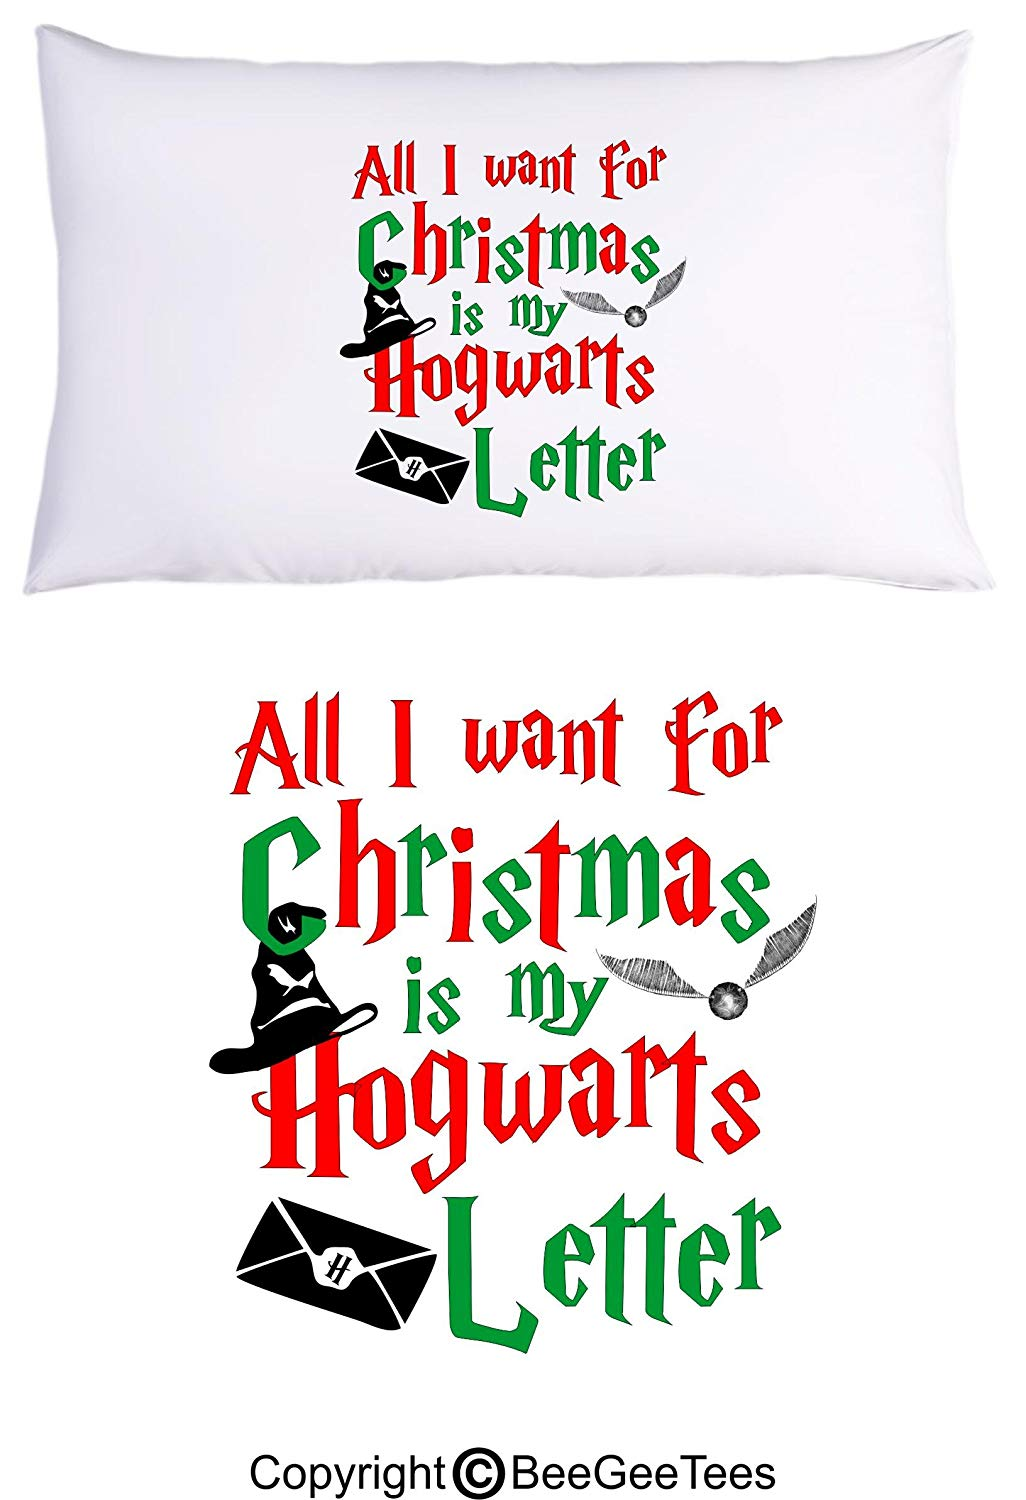 All I Want For Christmas Is My Hogwarts Letter Funny Wizard Pillowcase by BeeGeeTees (1 Queen Pillowcase)